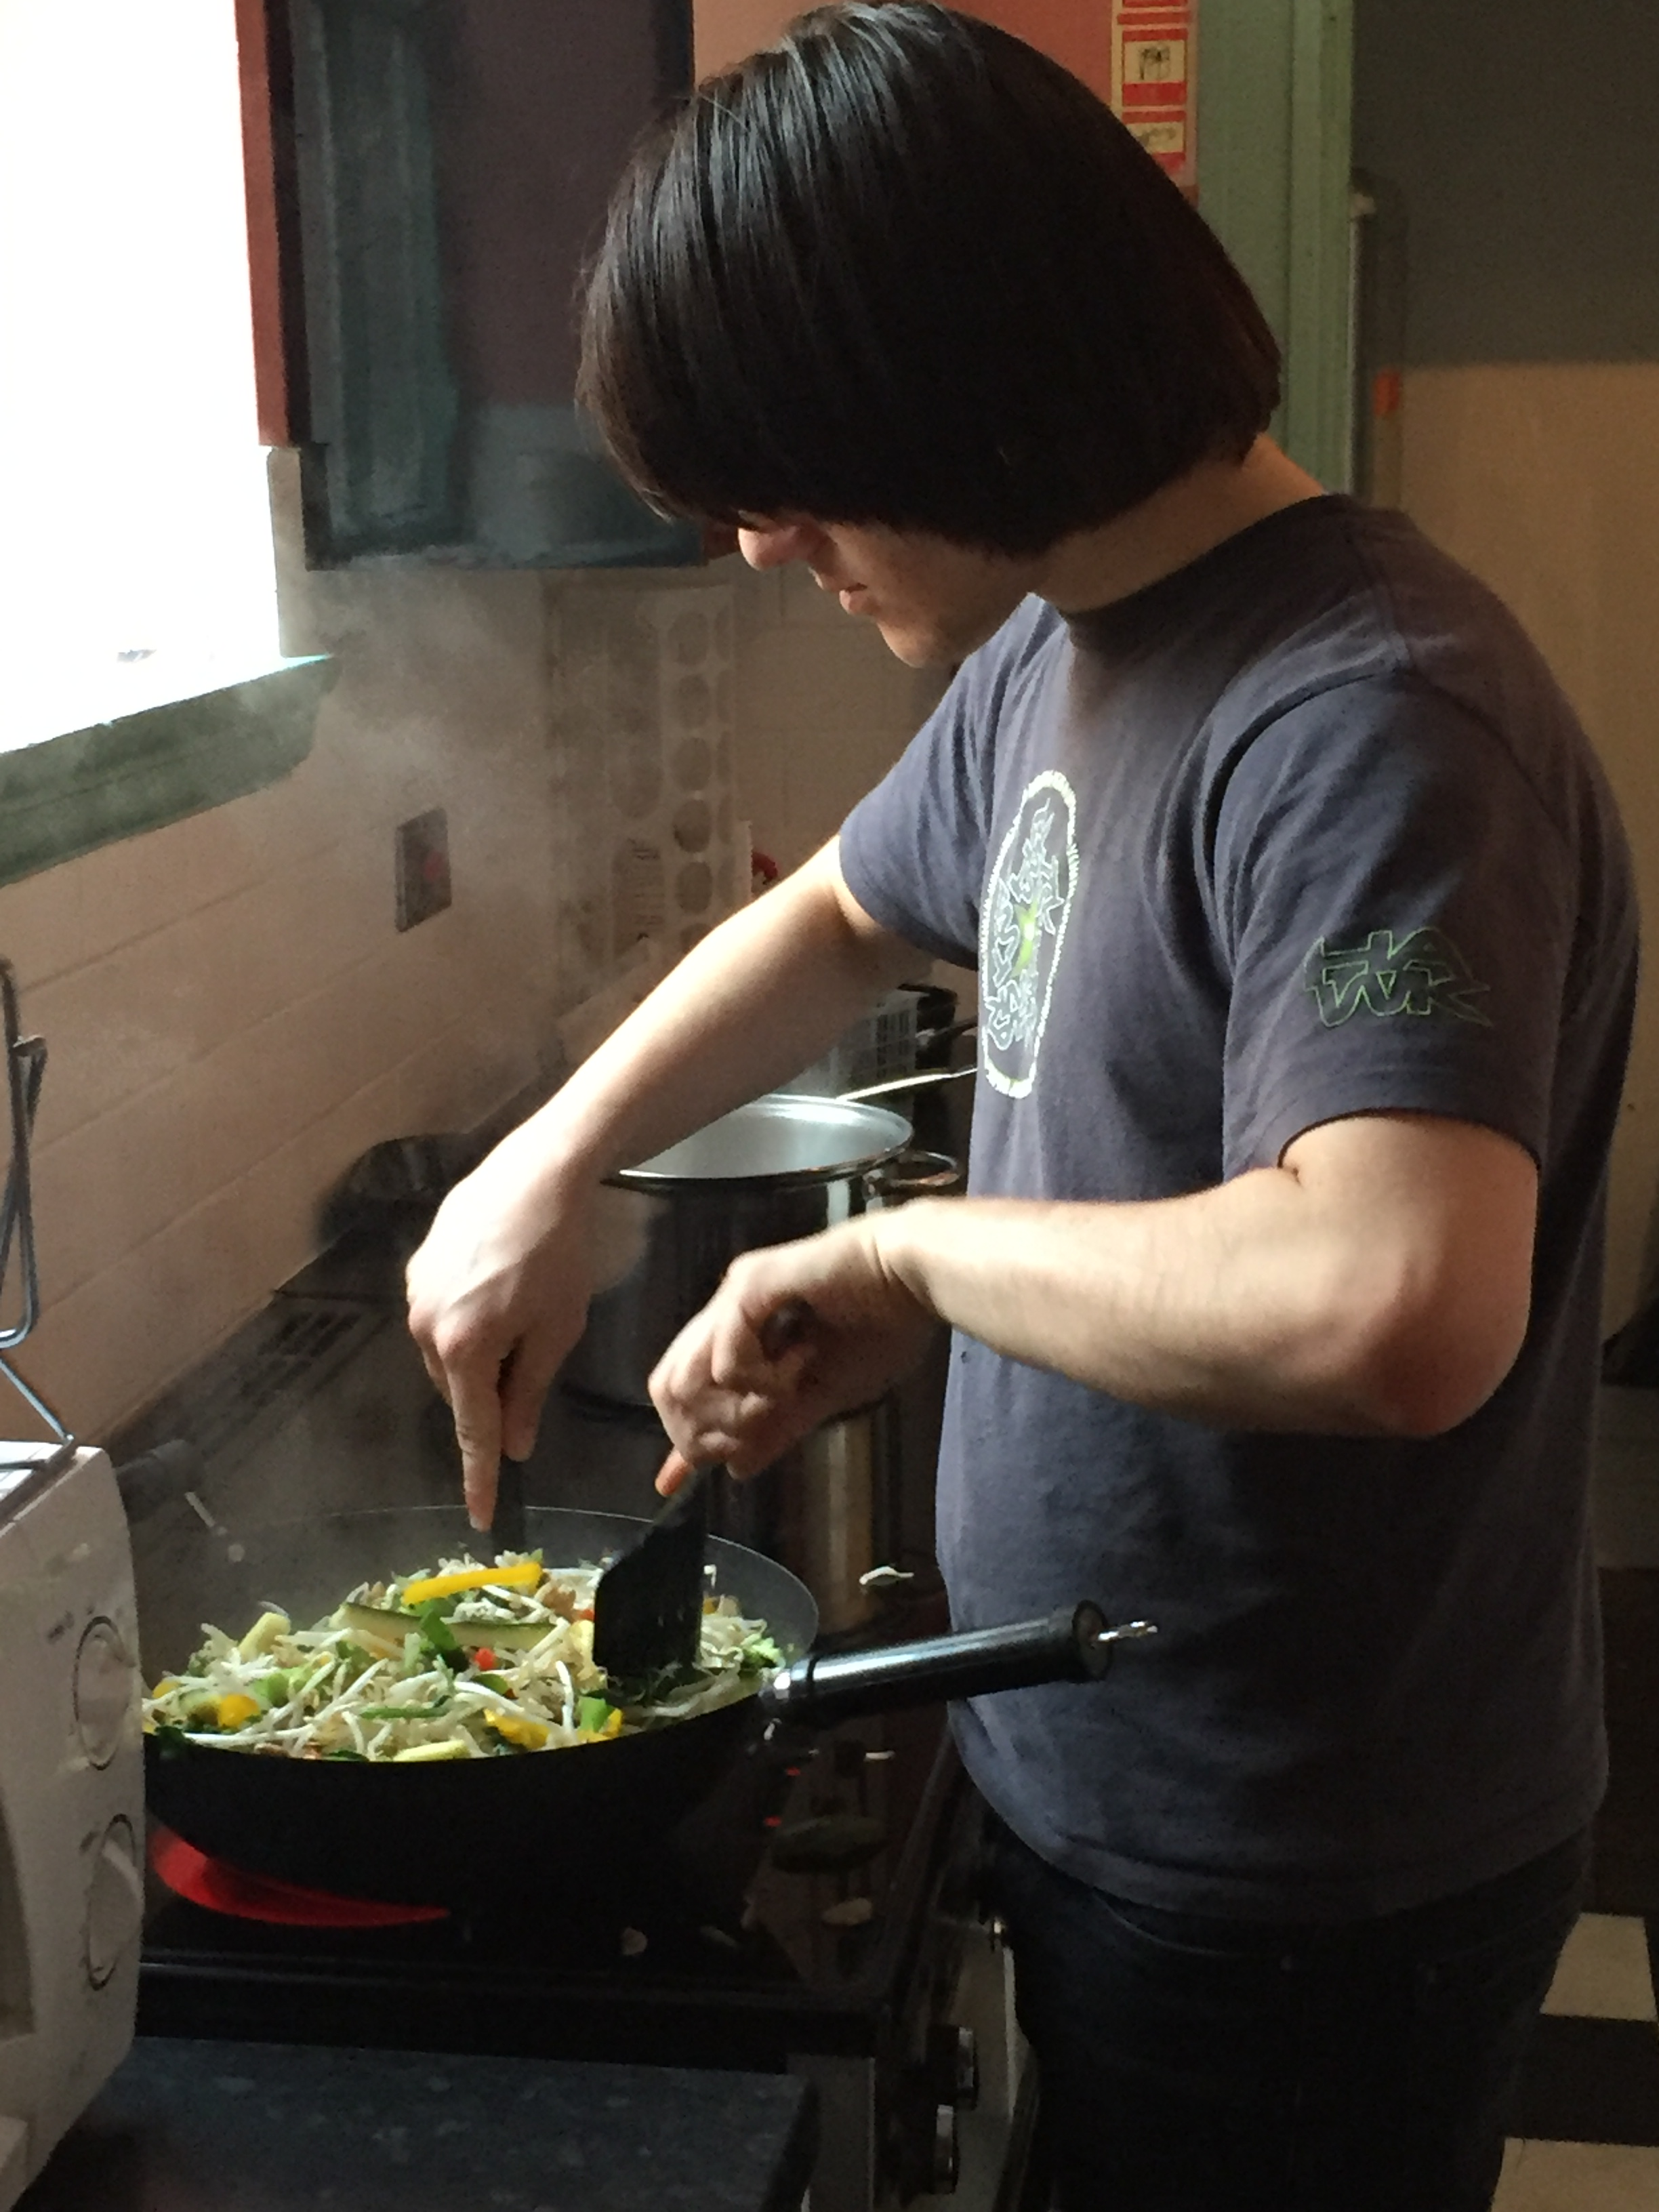 A young man cooking a stir fry